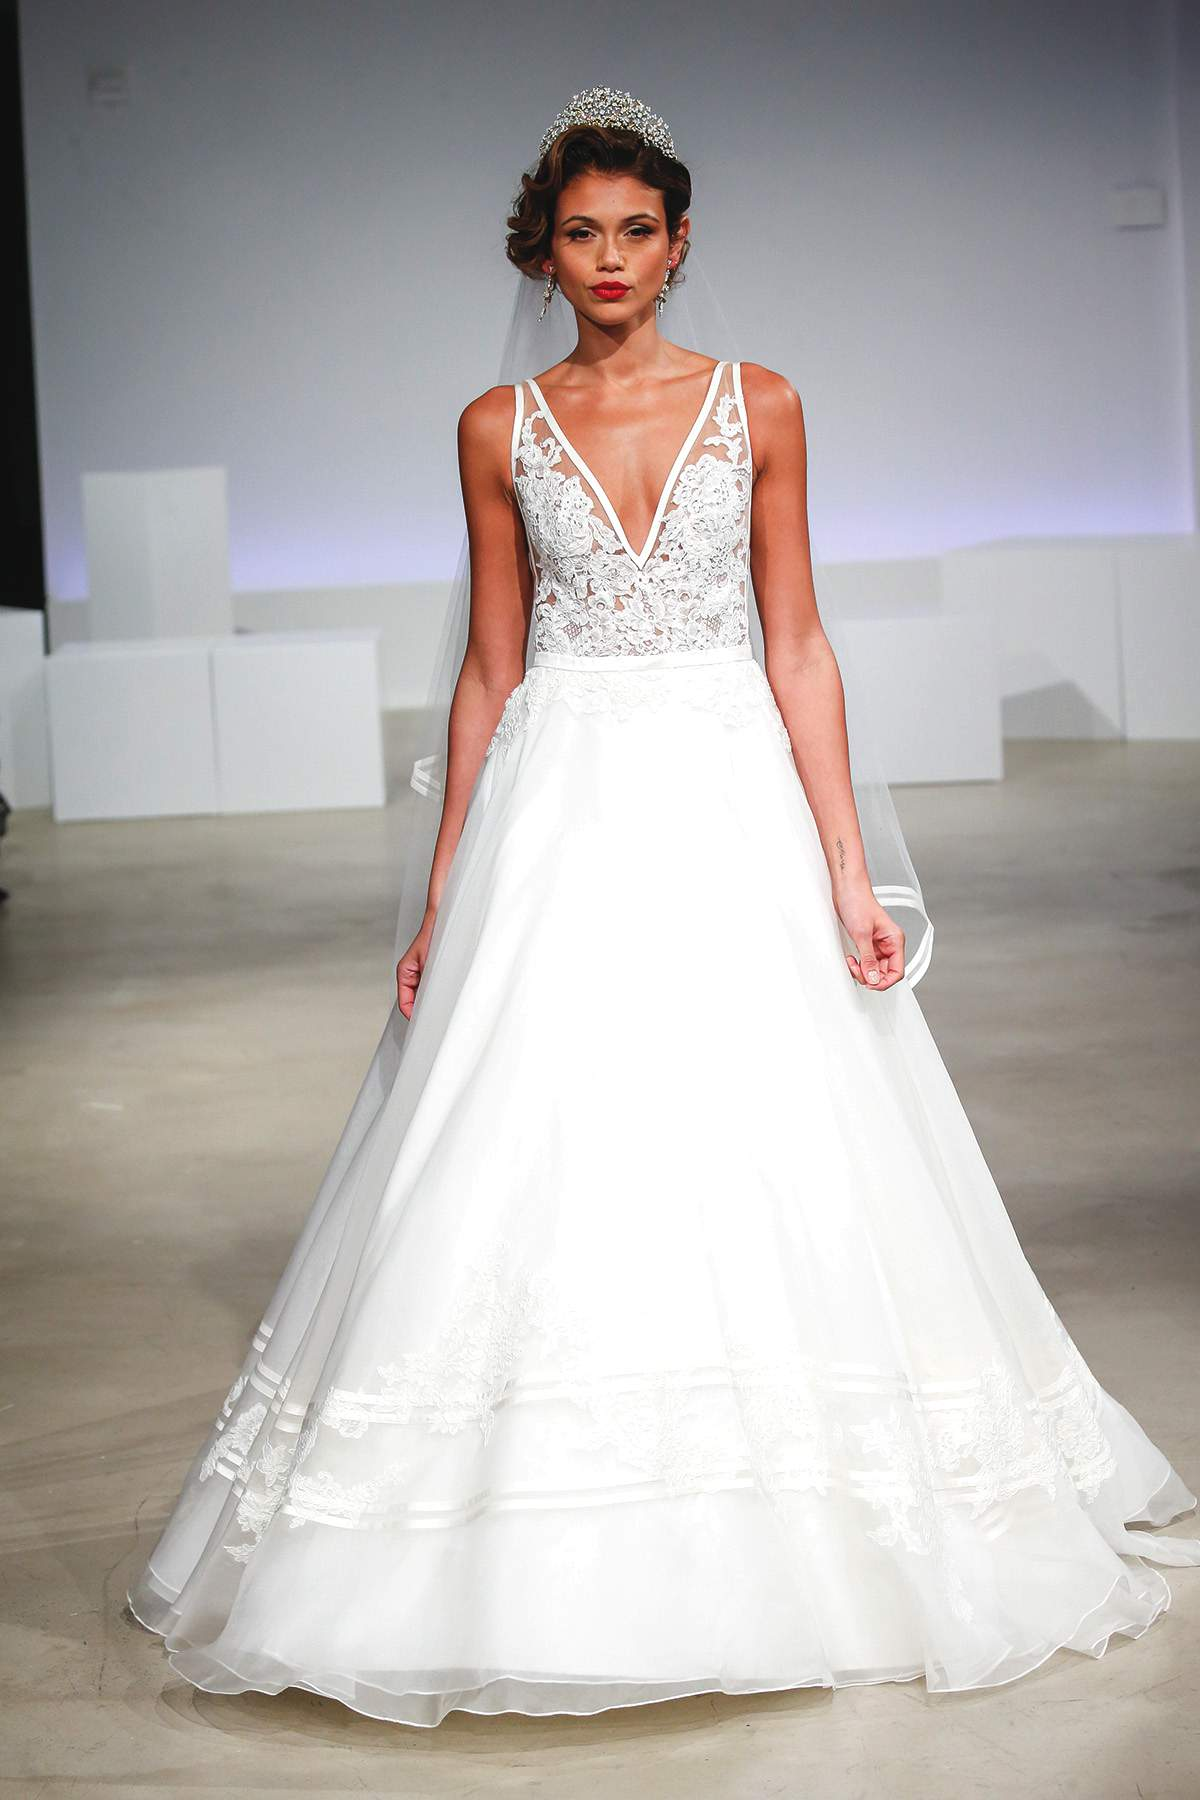 Wedding dresses to suit your body shape - Love Our Wedding